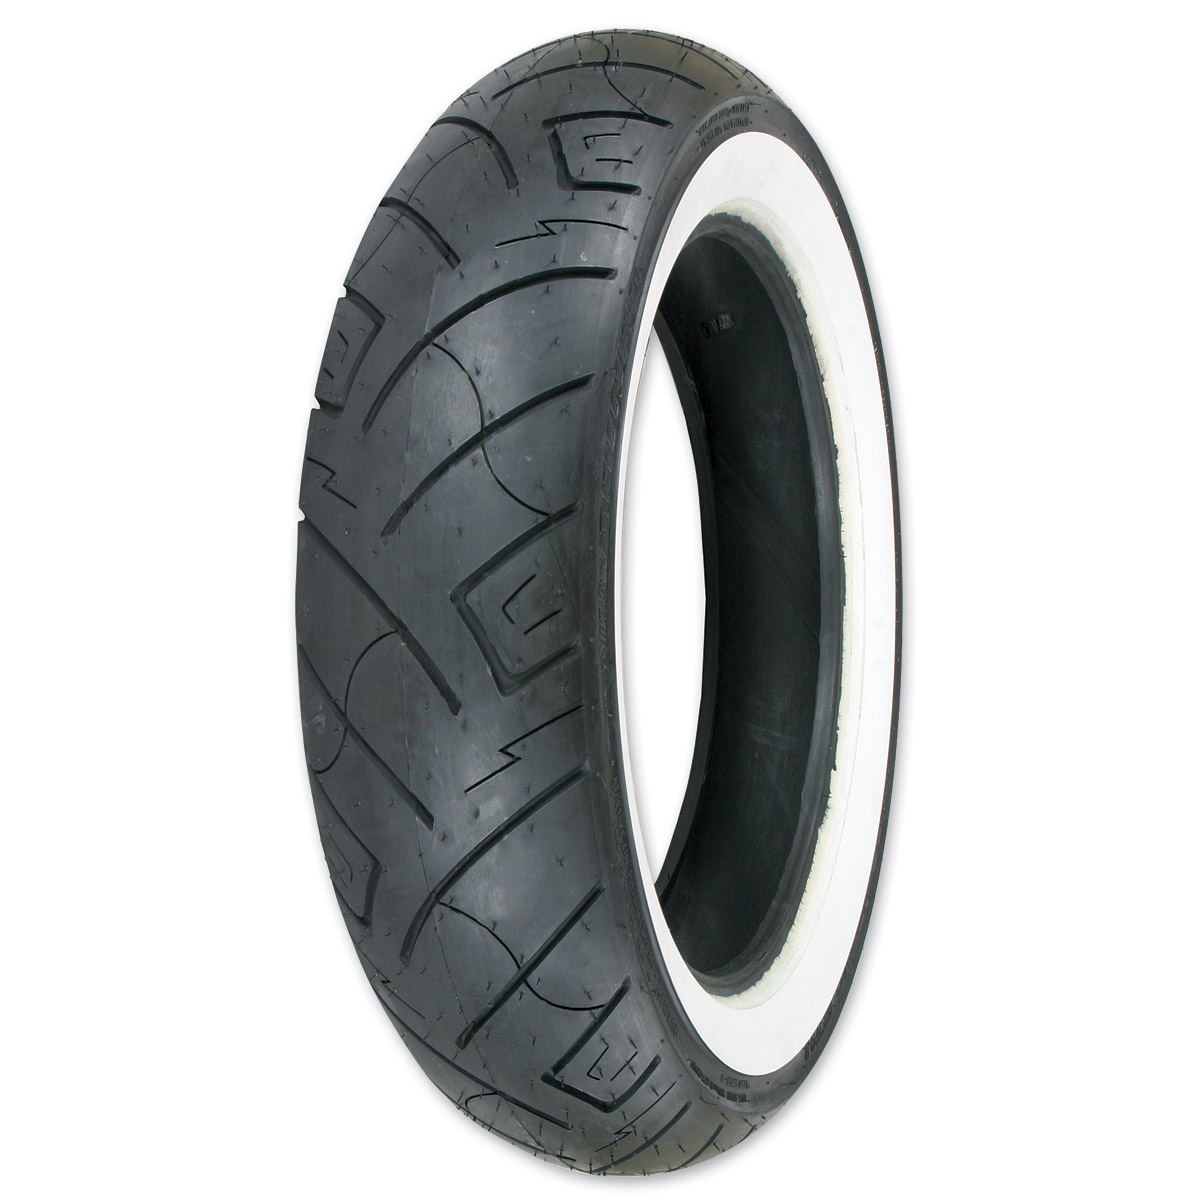 Shinko 777 90/90-21 Wide Whitewall Front Tire